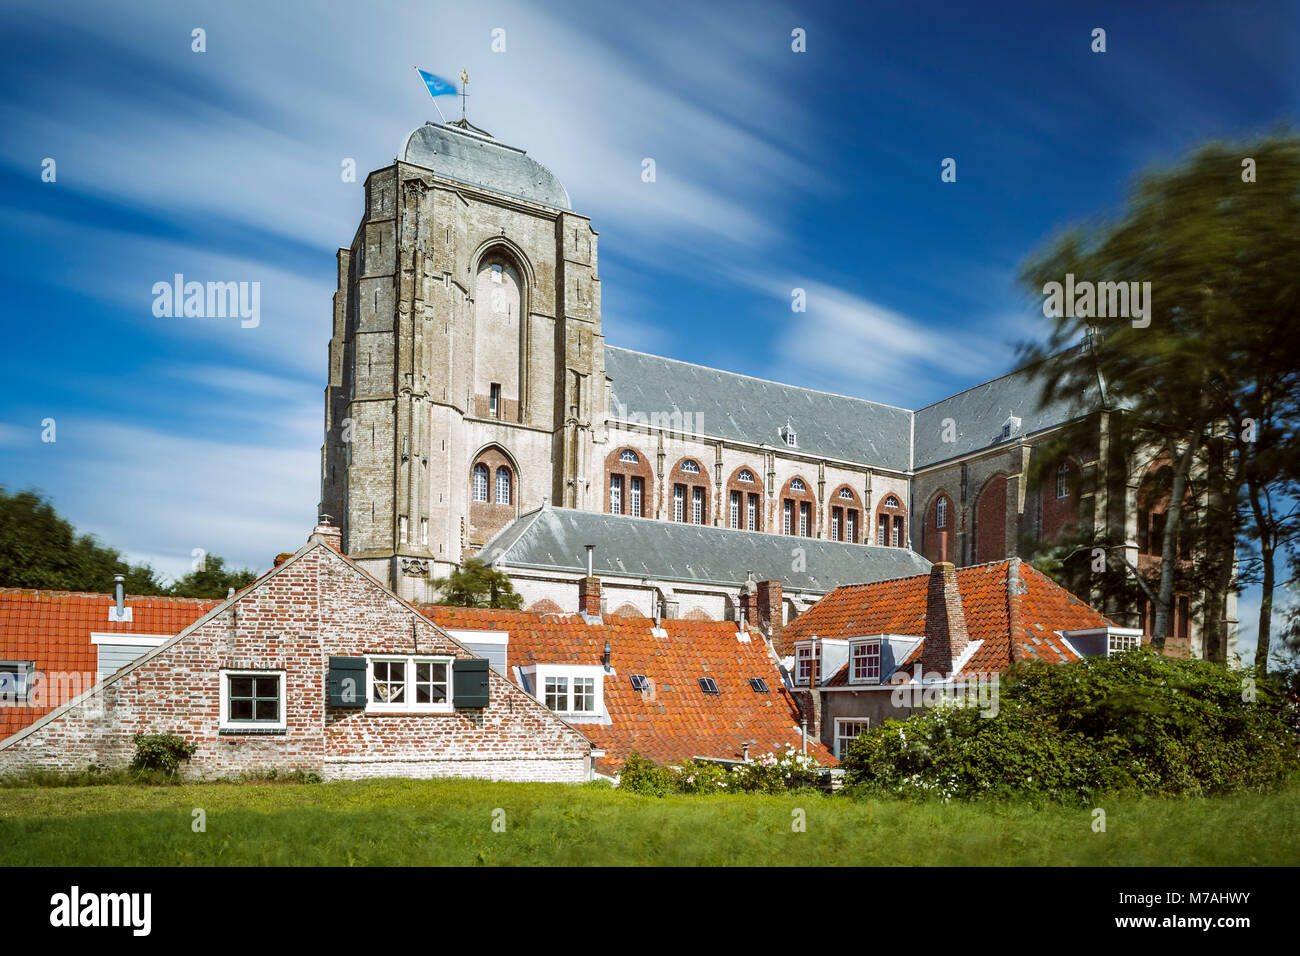 The Grote Kerk (big church) from Veere on Zeeland / the Netherlands in a long time exposure, daylight shot with - Stock Image